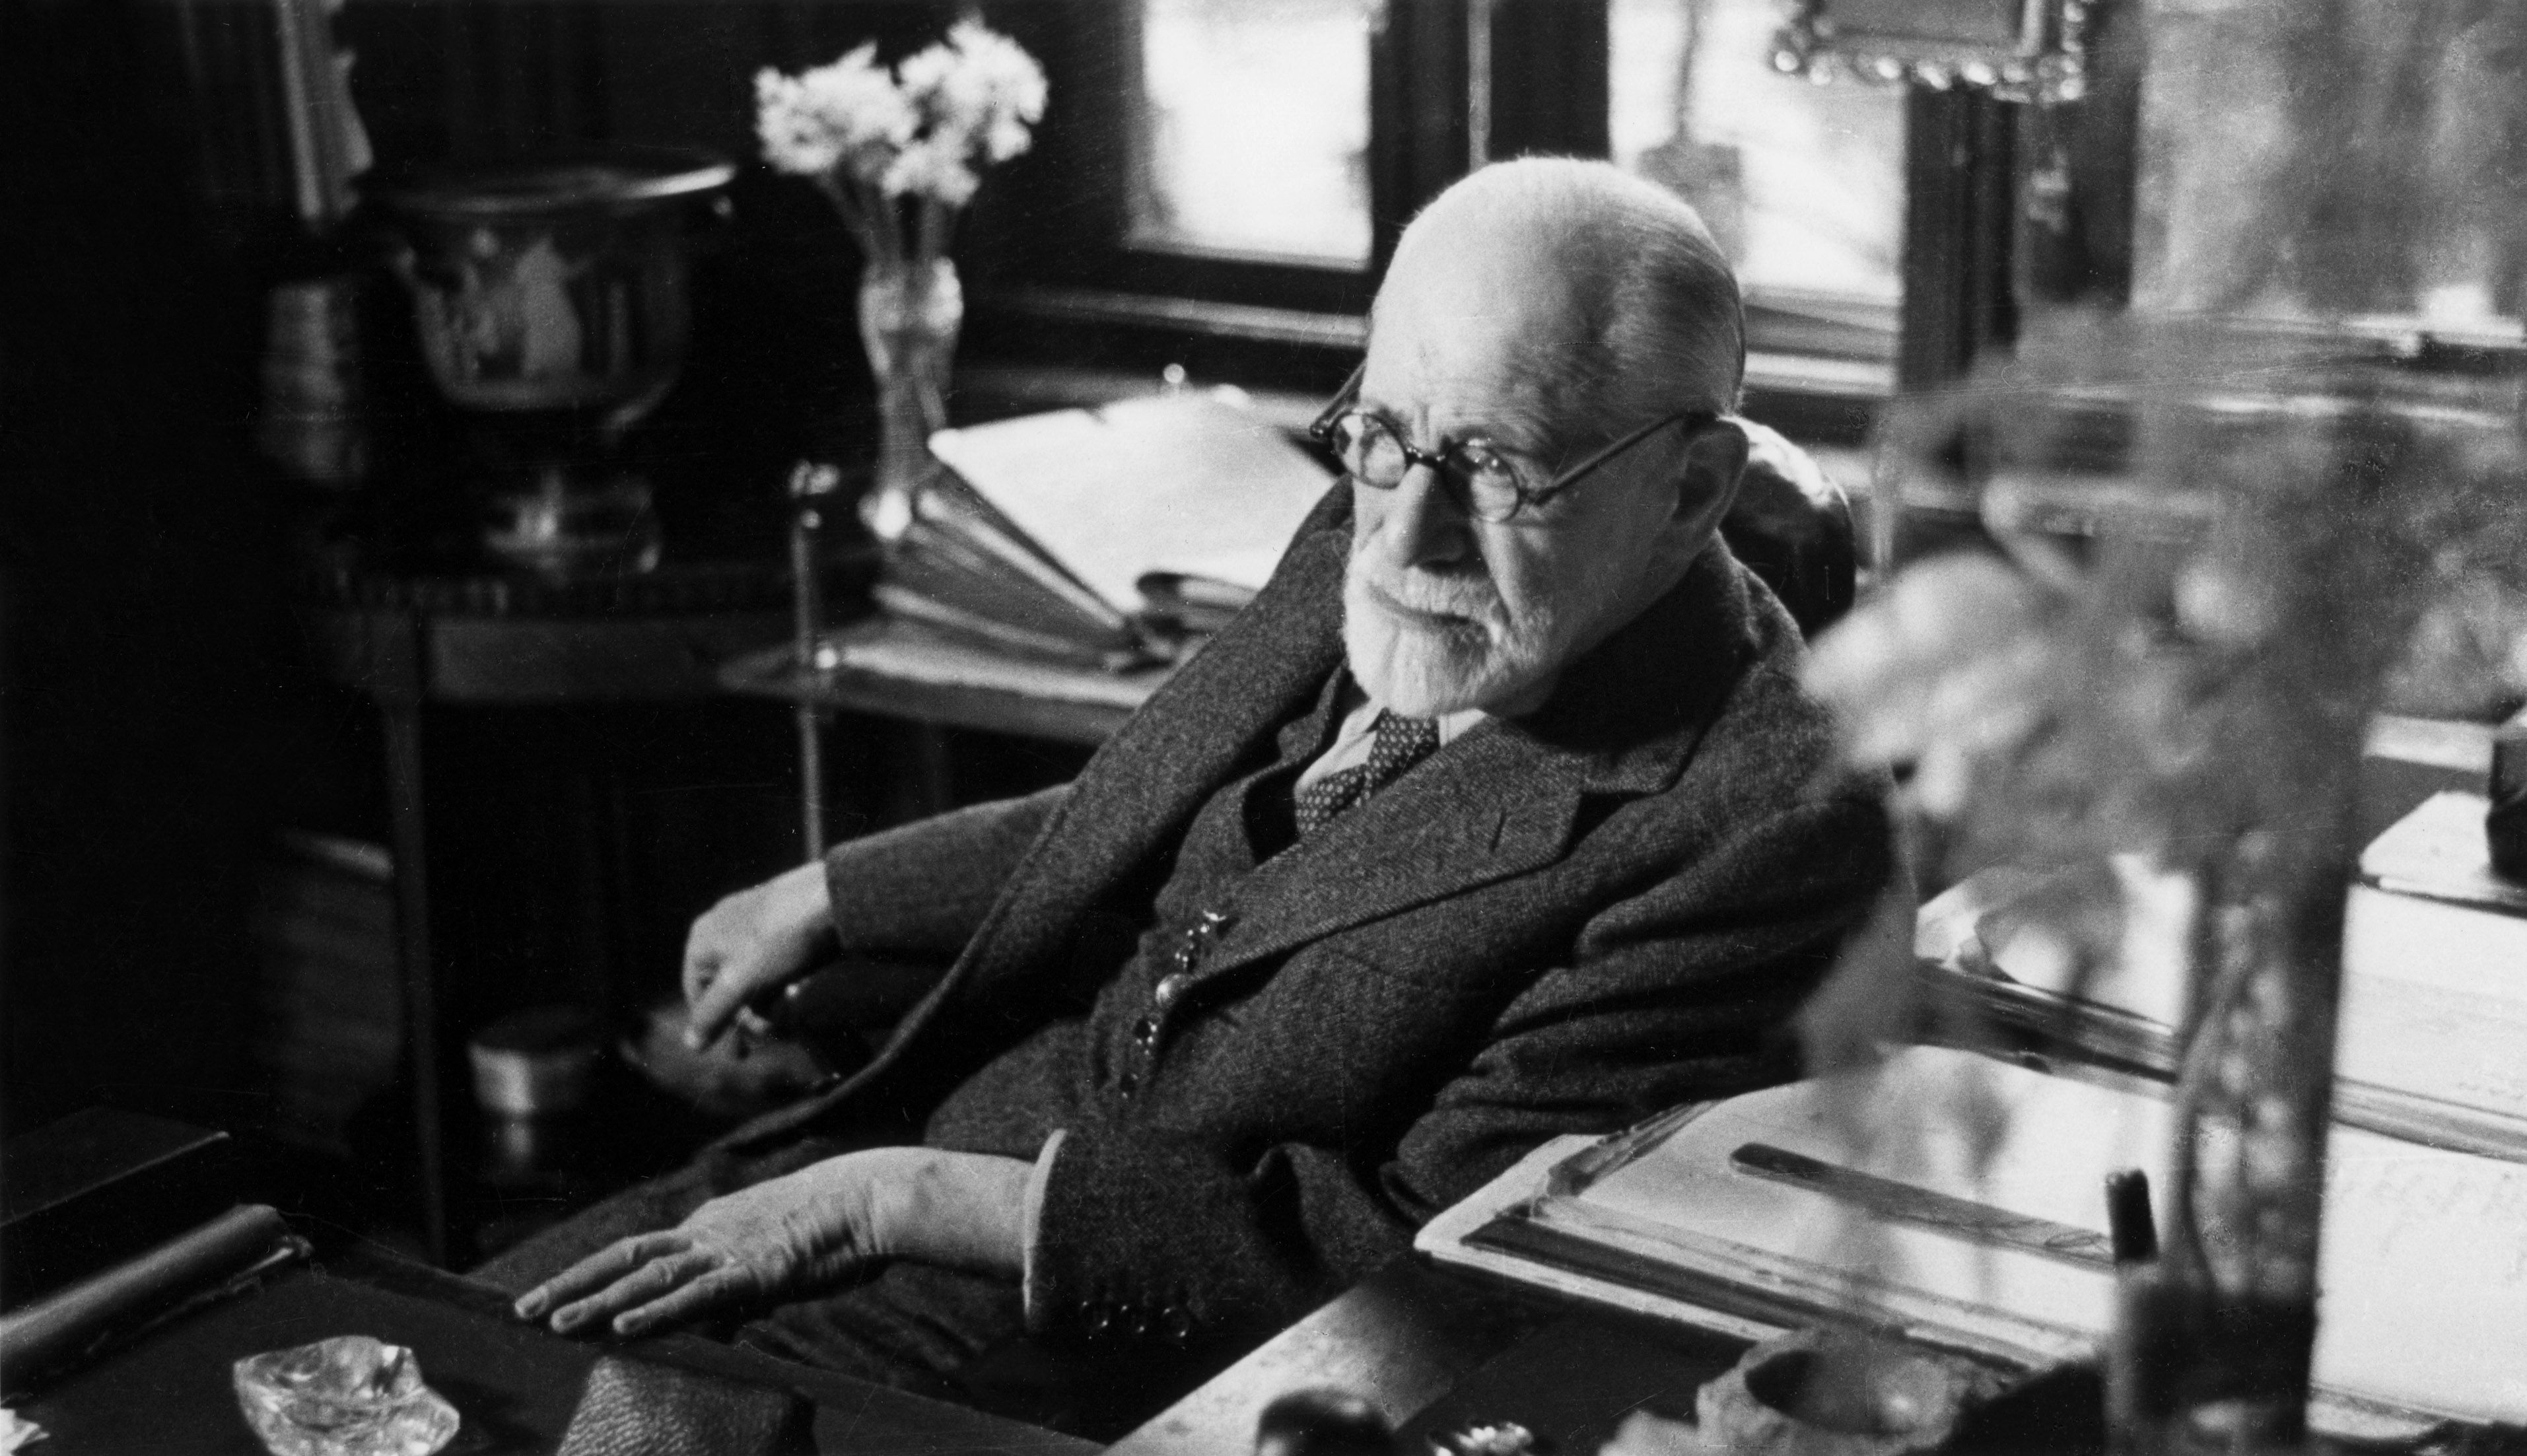 a biography and life work of sigmund freud an austrian psychiatrist – sigmund freud the austrian founder of psychoanalysis was born sigismund schlomo freud in the town of freiberg (now pribor) in the austro-hungarian region of moravia ( mähren , today in the czech republic) on may 6, 1856.